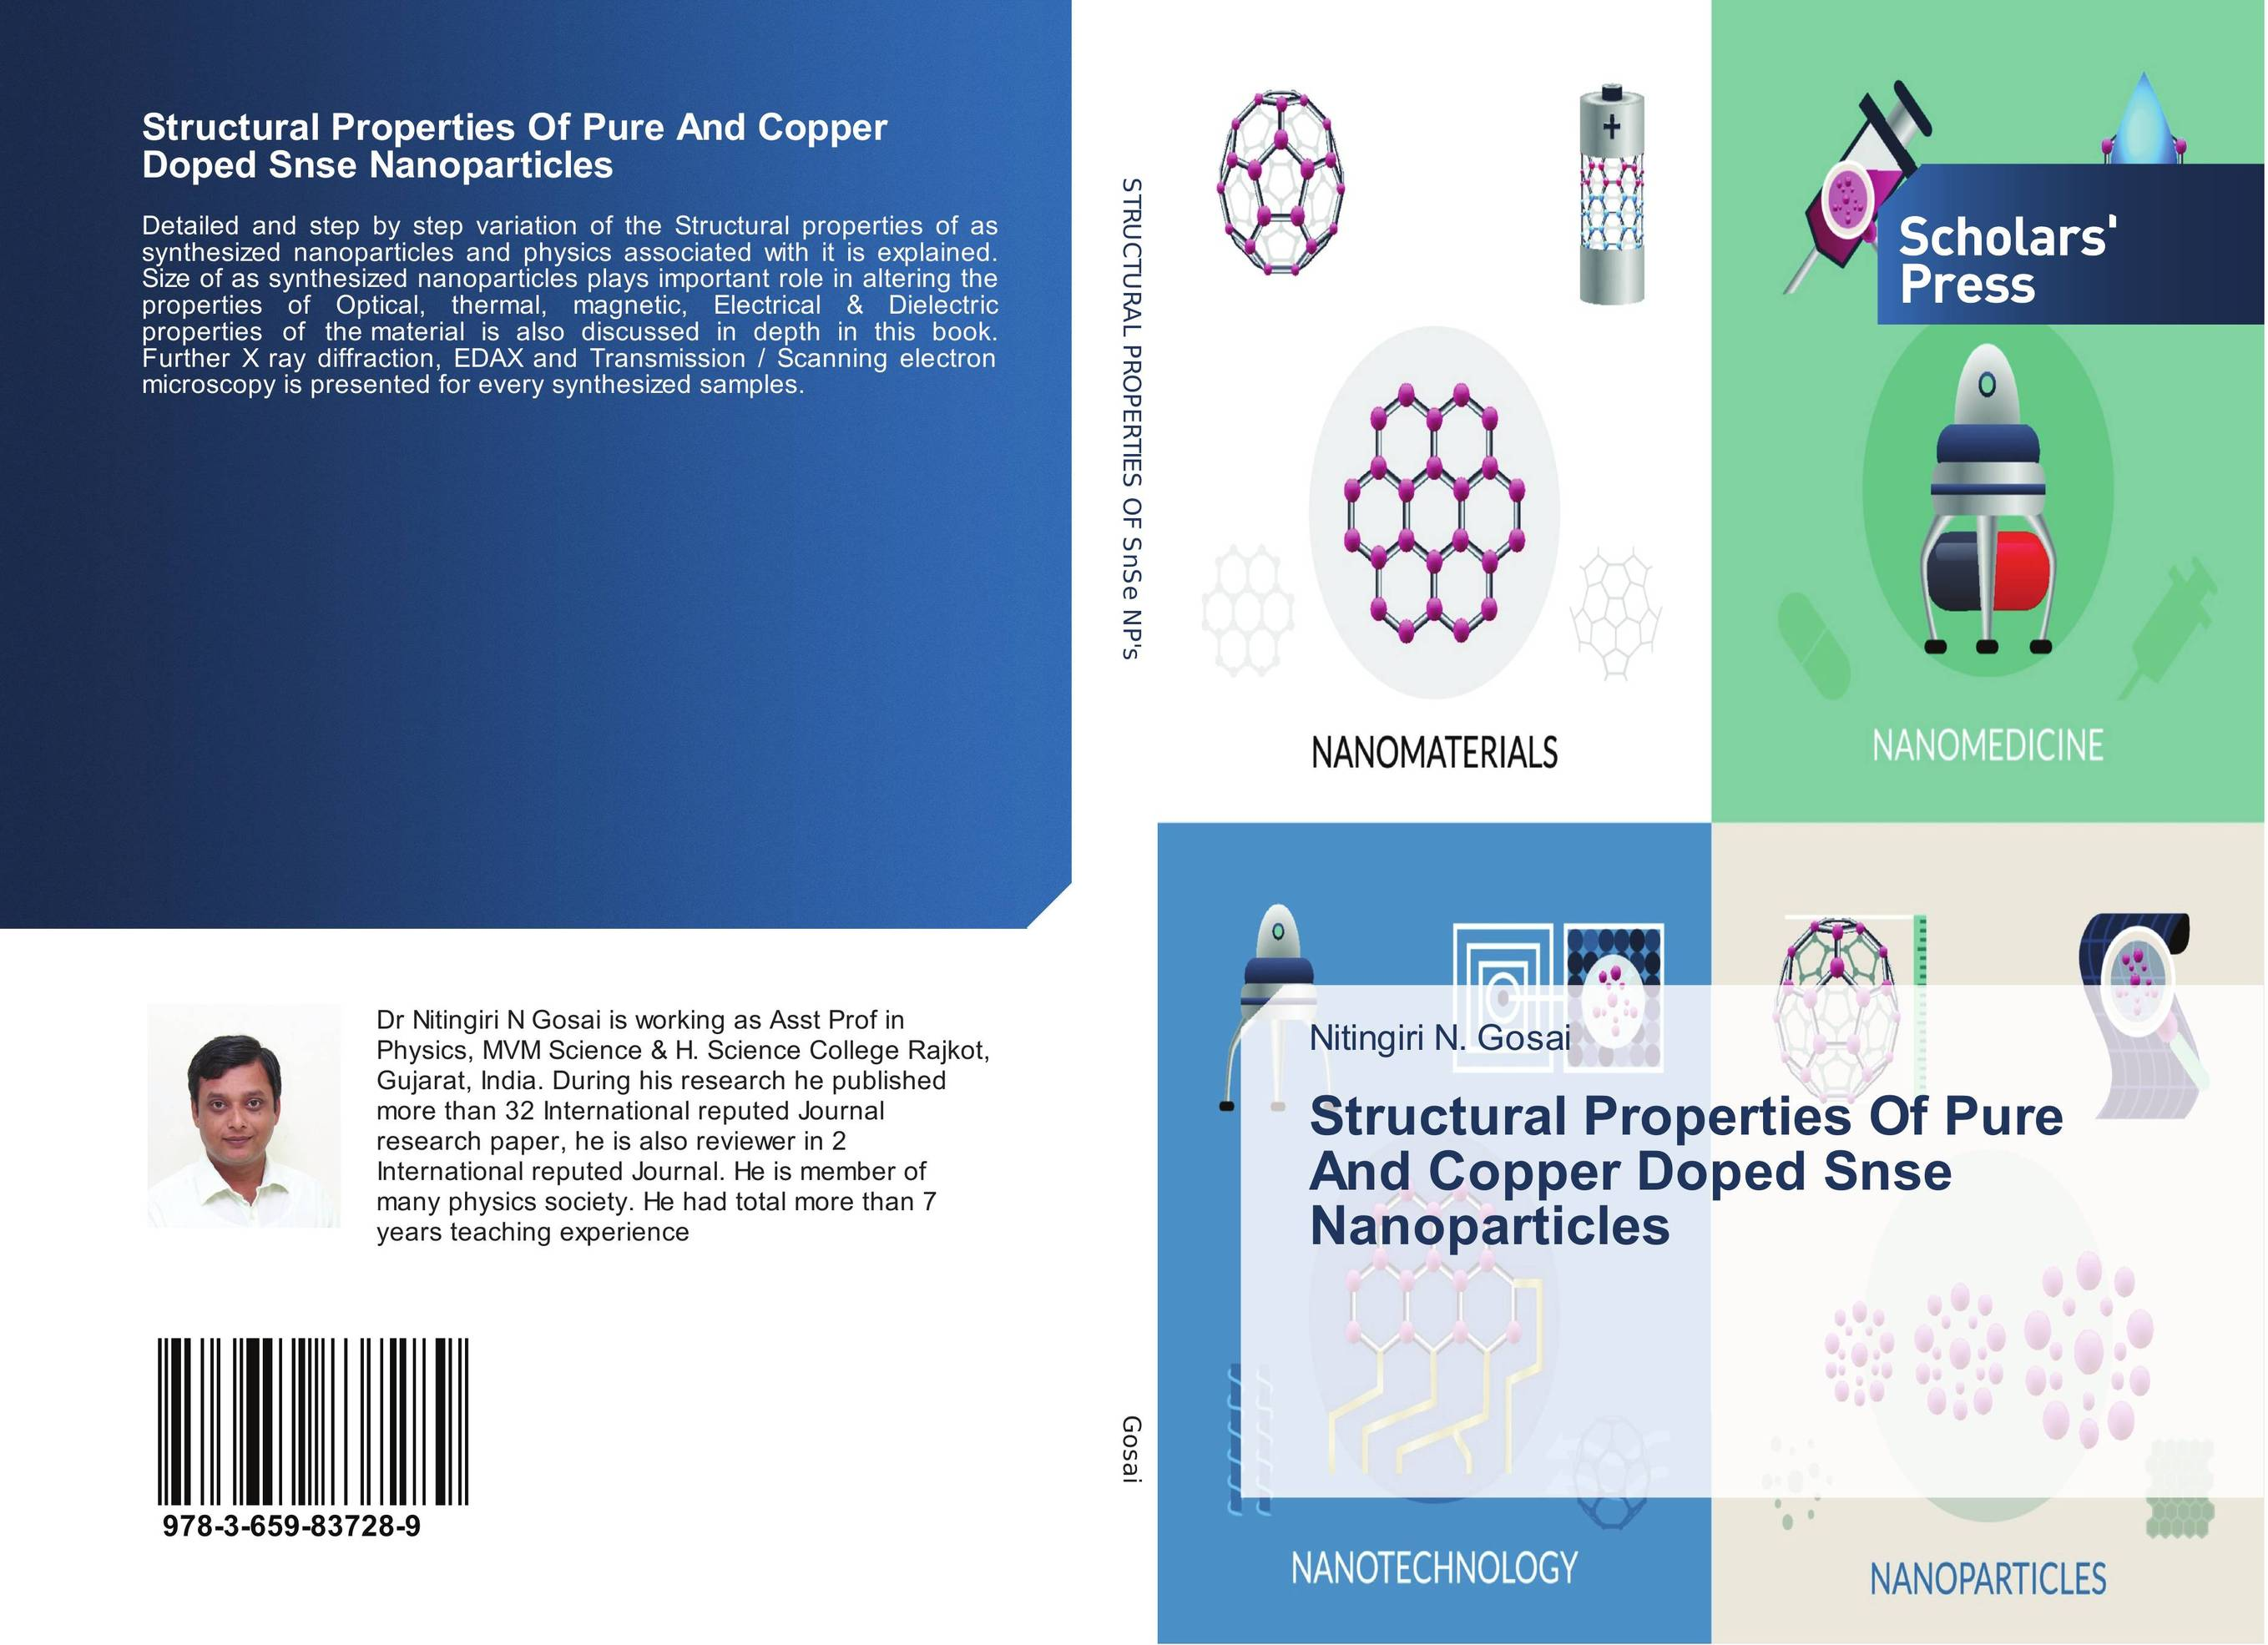 Фото Structural Properties Of Pure And Copper Doped Snse Nanoparticles synthesis and studies on the properties of ferritic nanoparticles